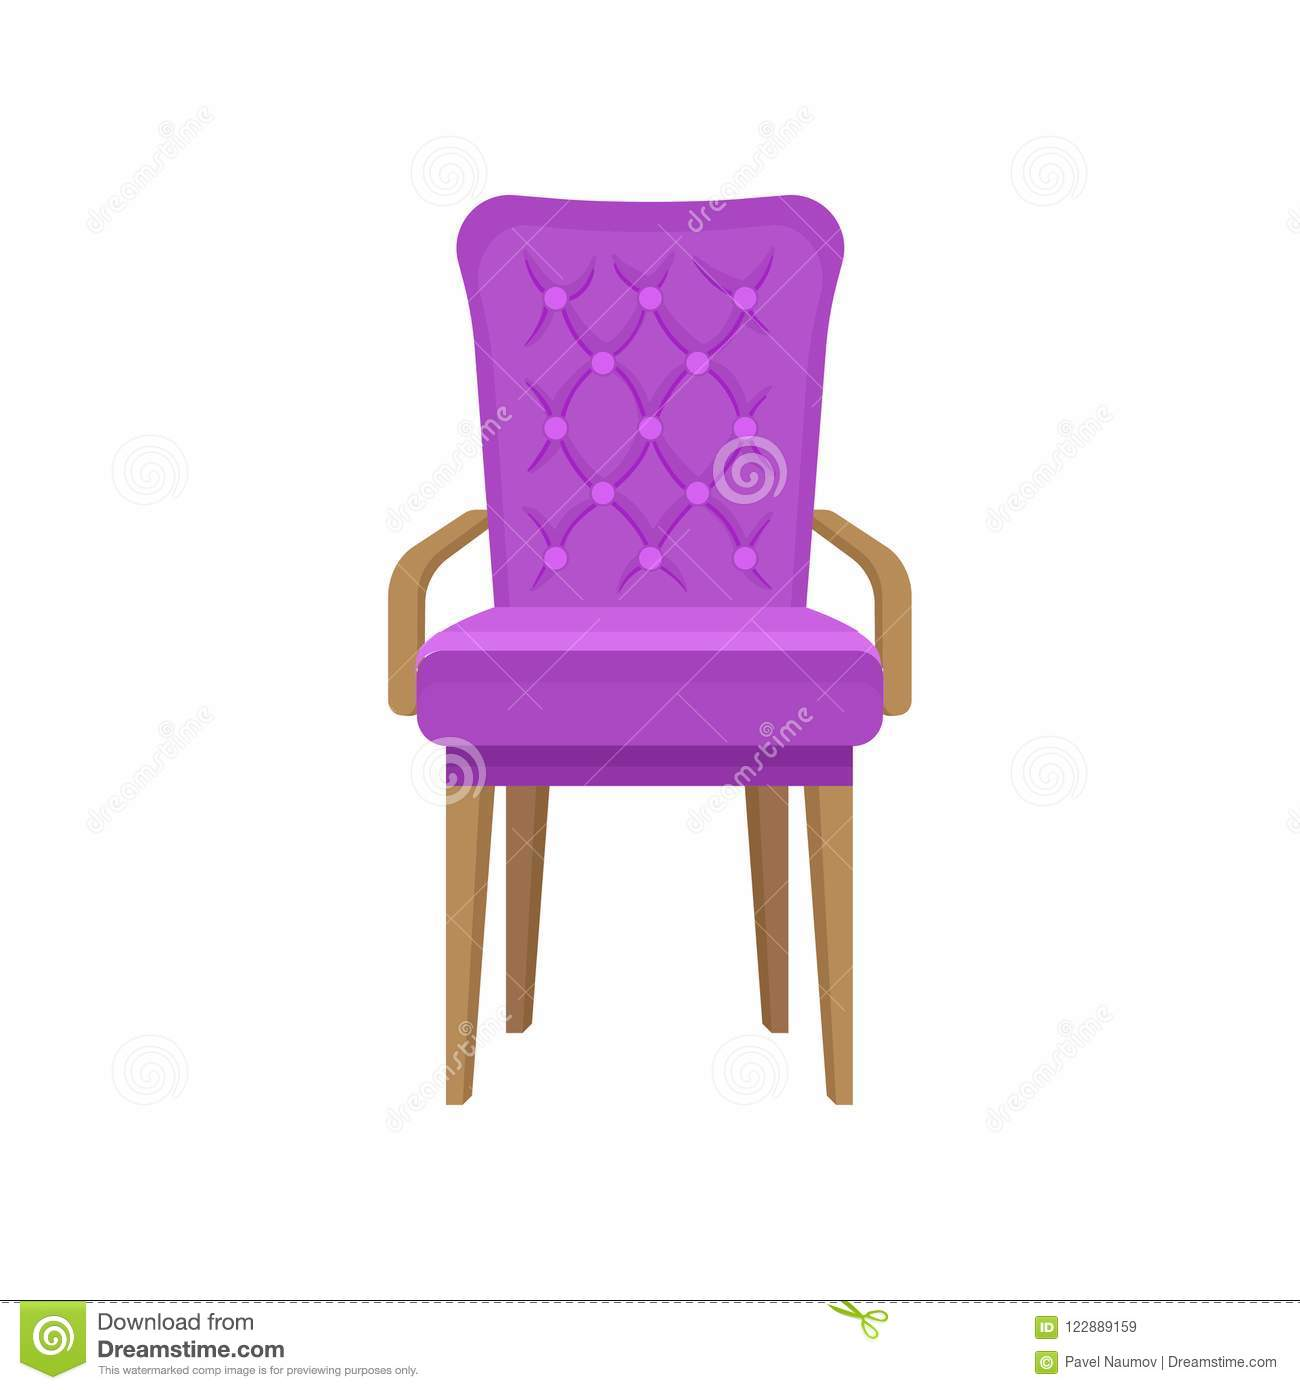 Velvet armchair living room furniture interior design element vector illustration isolated on a white background